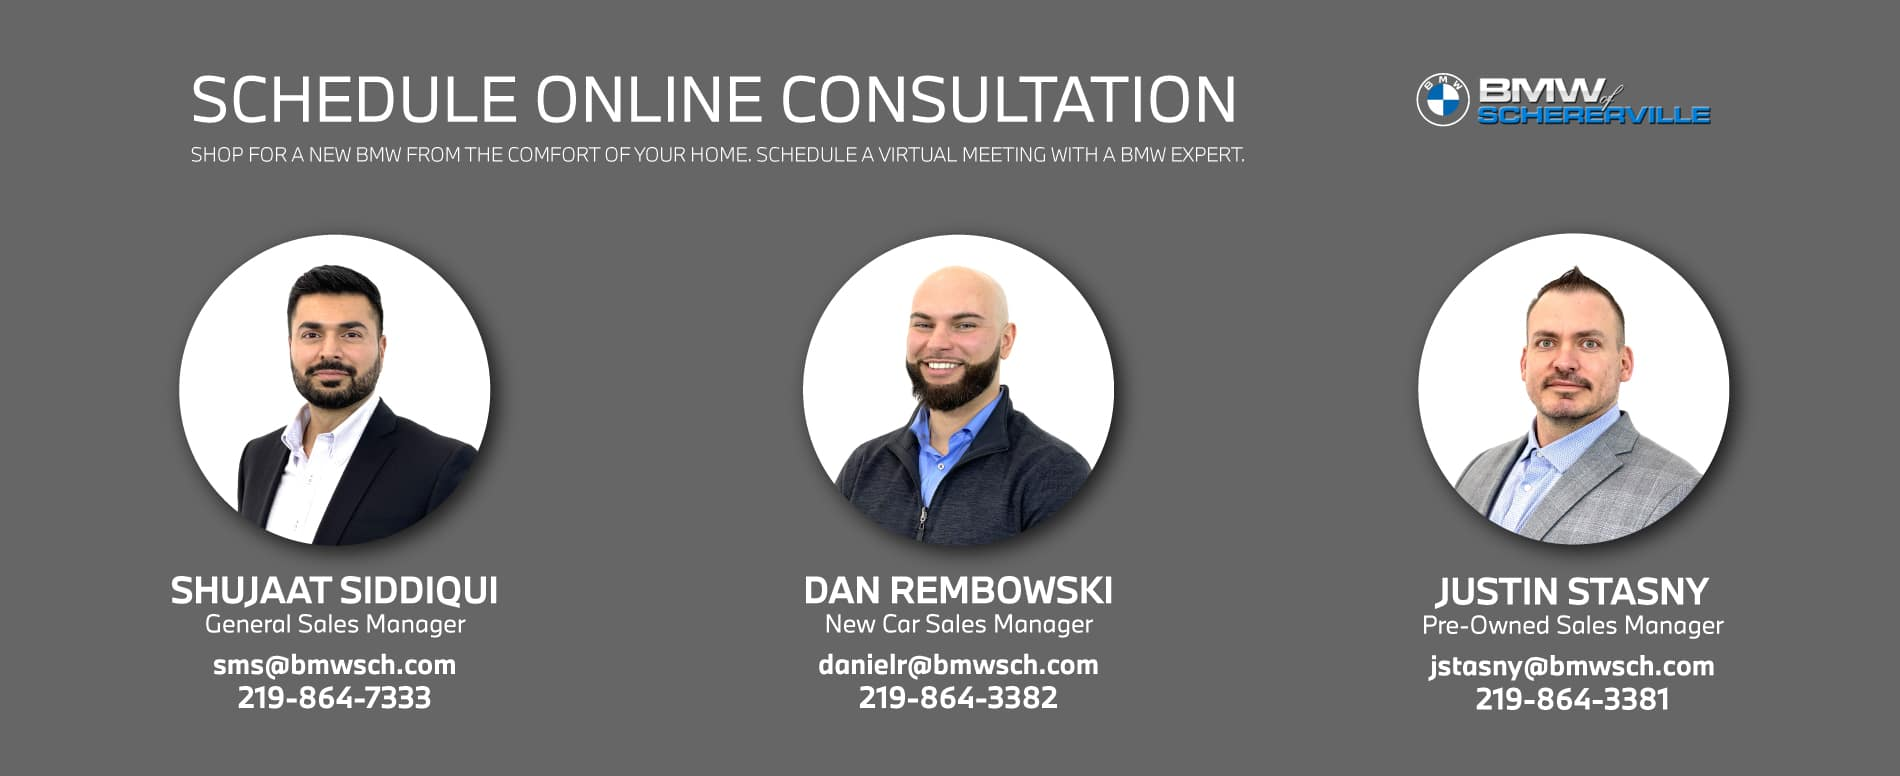 Schedule an Online Consultation: with Shujaat Siddiqui, Dan Rembowski, or Justin Stasny